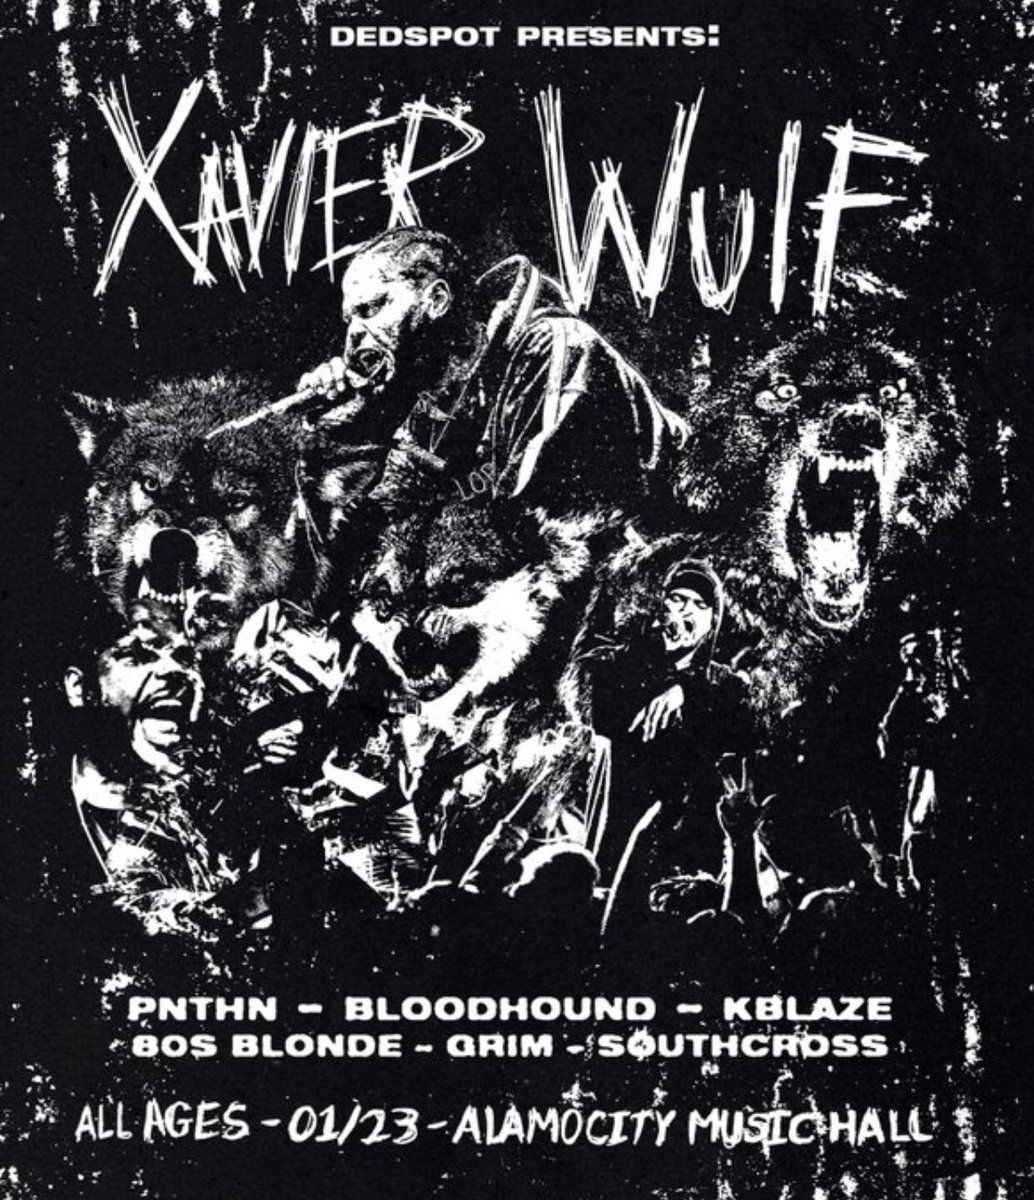 """SAN ANTONIO 1/23/19  OPENING FOR FRONT MAN WULF  COP TIX BELOW USING THE PROMO CODE """"PNTHN"""" https://events.loop-1.com/Events/39754/xavier-wulf-live-in-san-antonio…"""